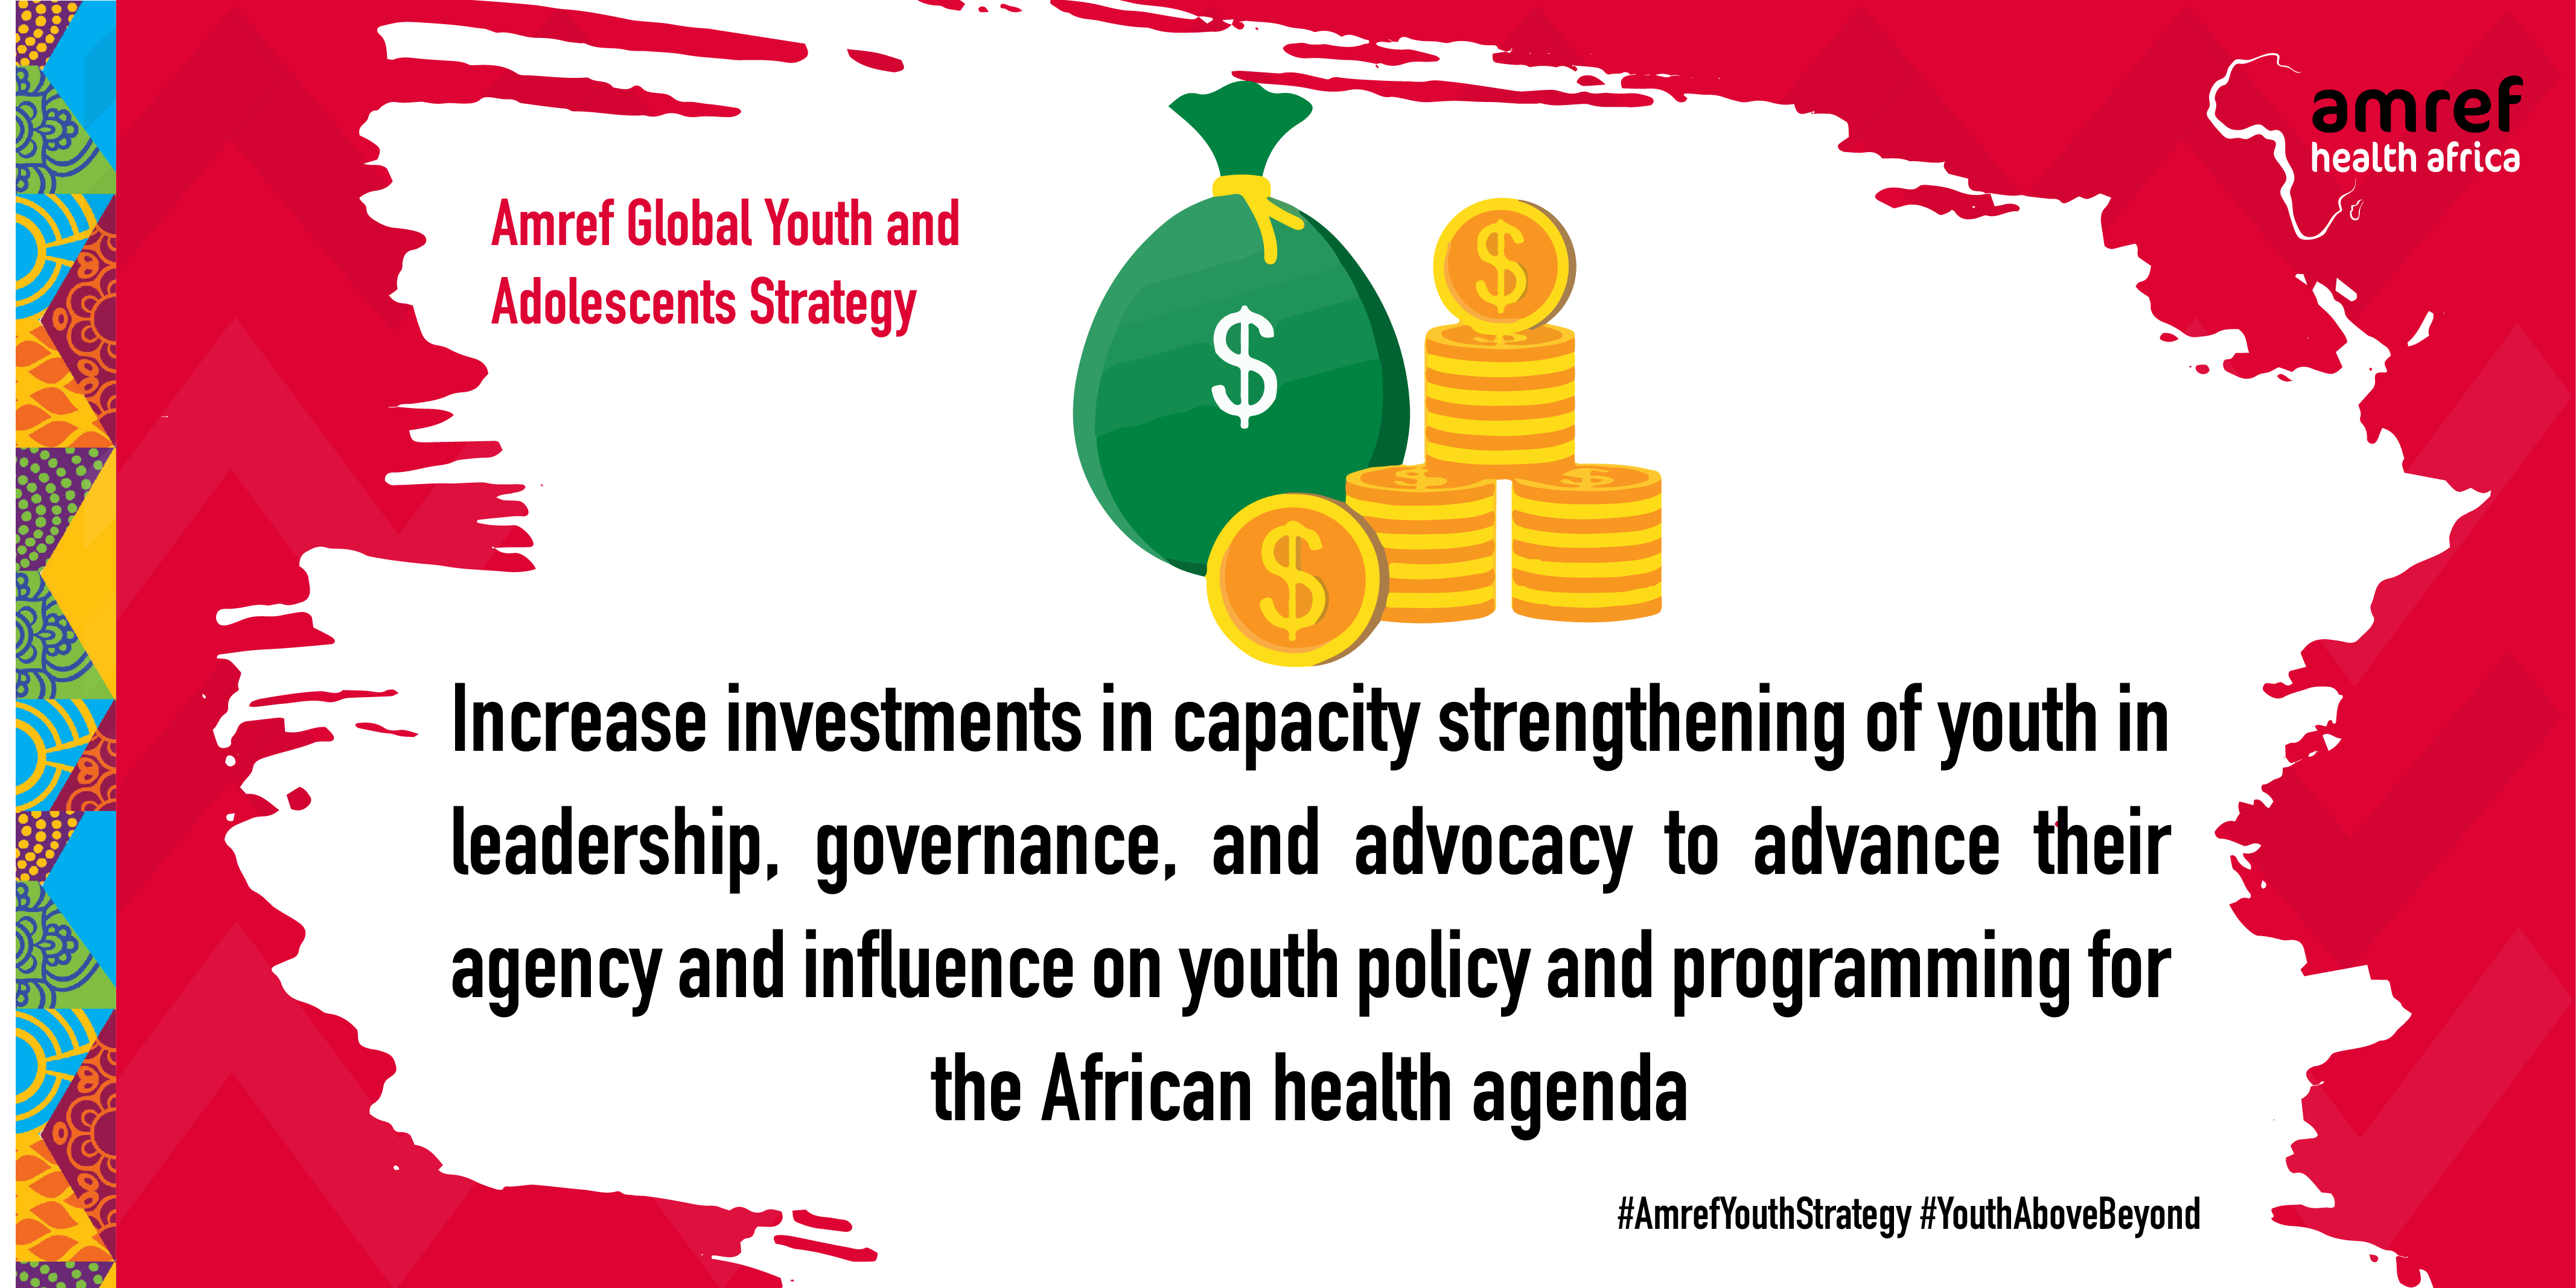 Amref Global Youth and Adolescents Strategy Launch